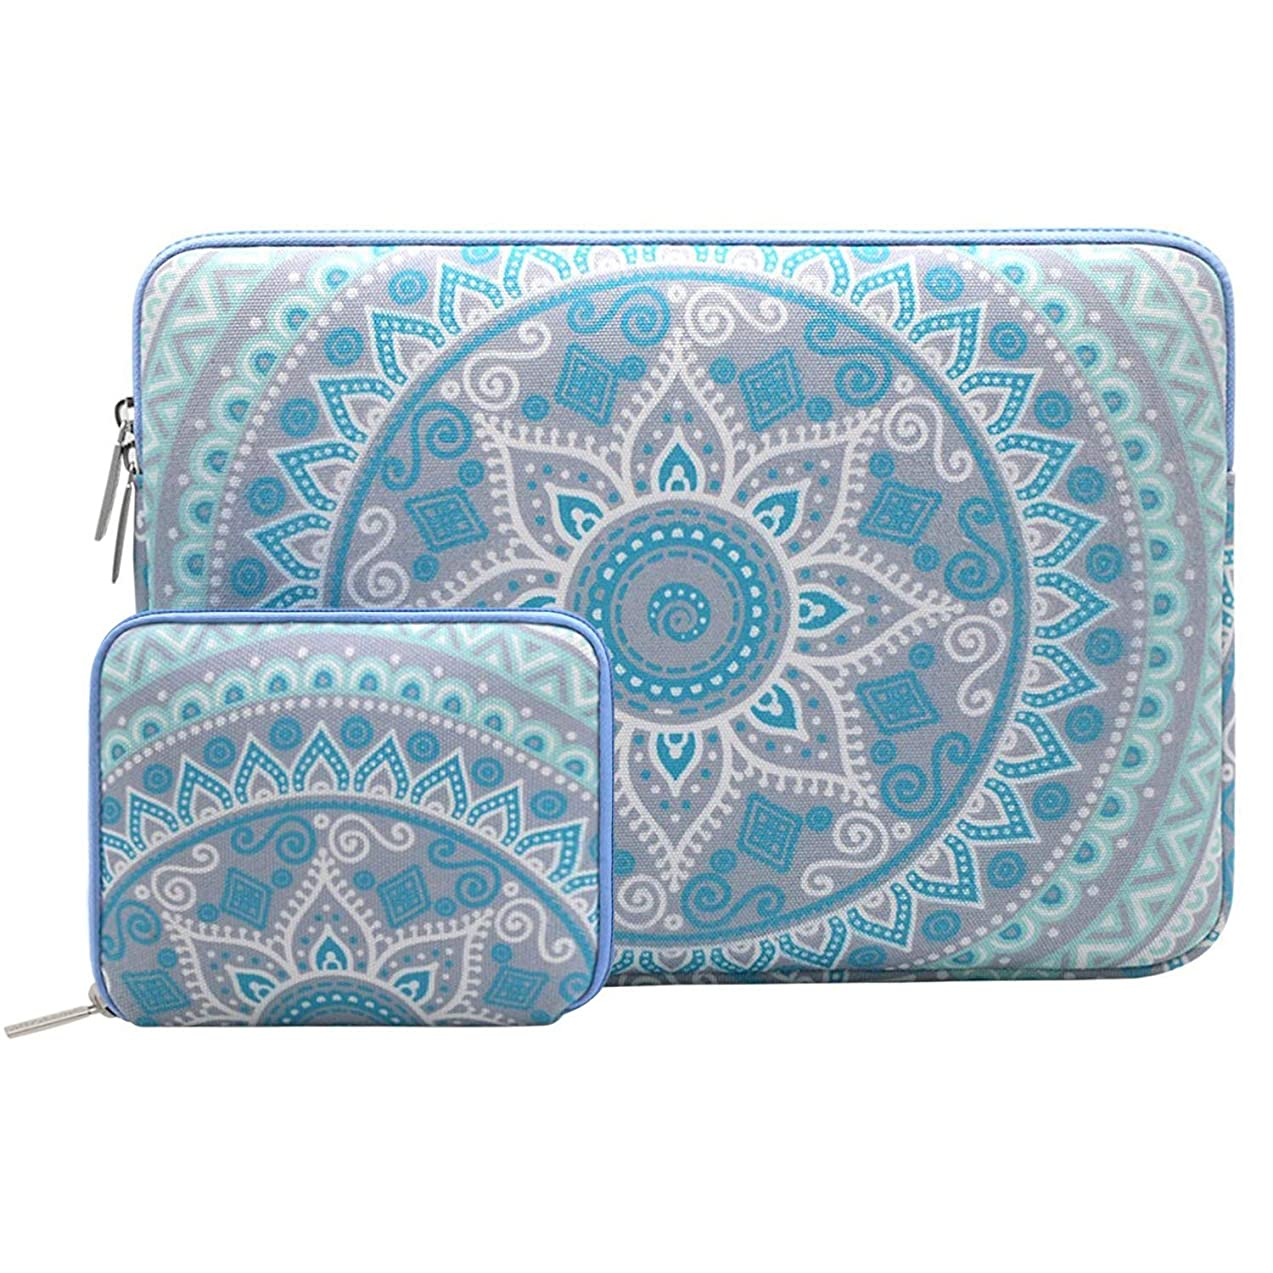 MOSISO Laptop Sleeve Compatible 15-15.6 Inch MacBook Pro, Notebook Computer with Small Case, Canvas Fabric Mandala Pattern Protective Carrying Bag Cover, Mint Green and Blue